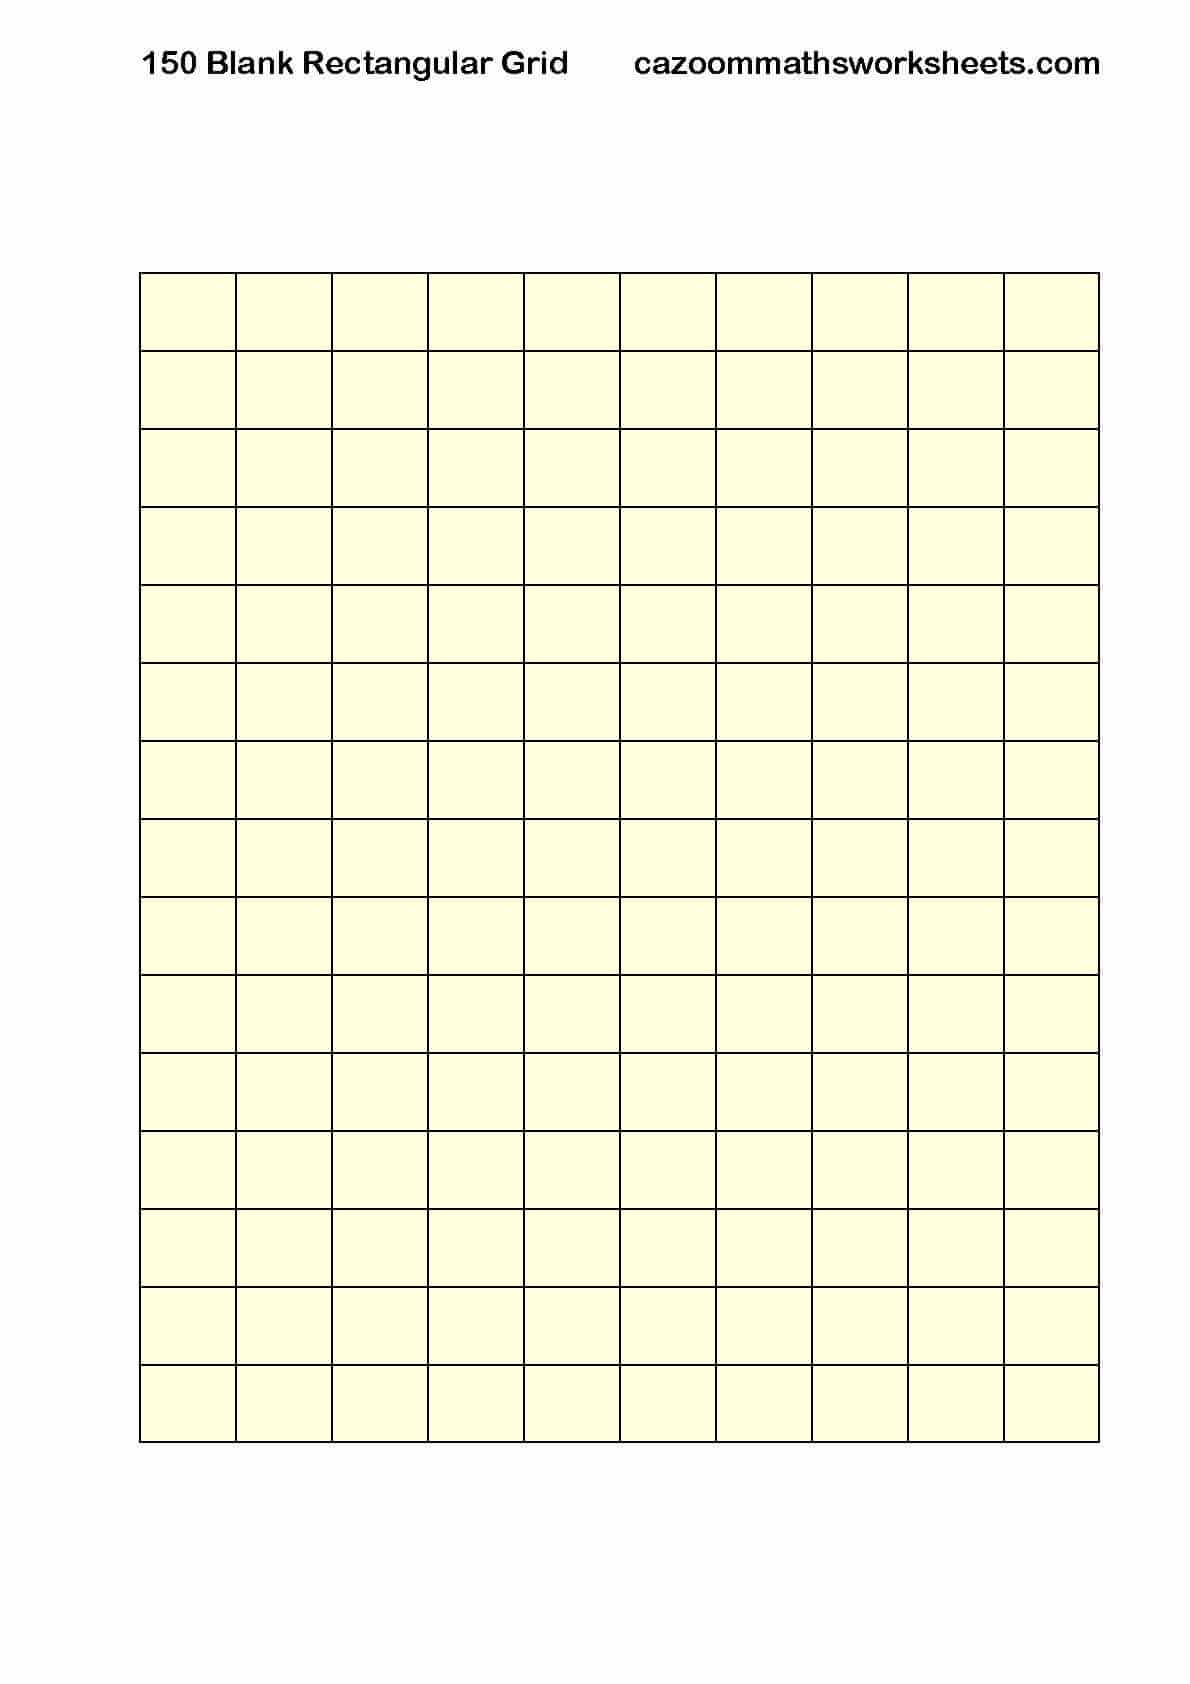 Number resources cazoom maths worksheets blank 150 rectangular grid gamestrikefo Image collections